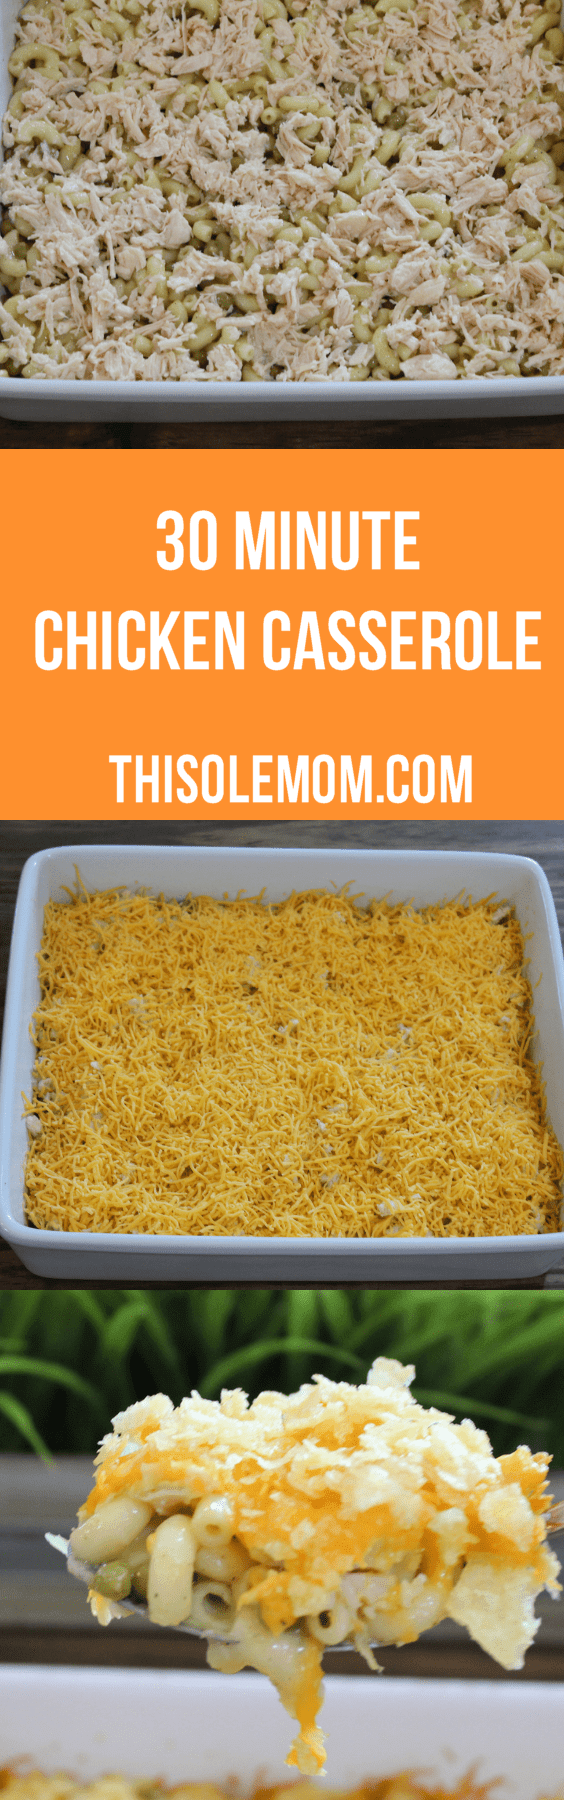 30 Minute Chicken Casserole